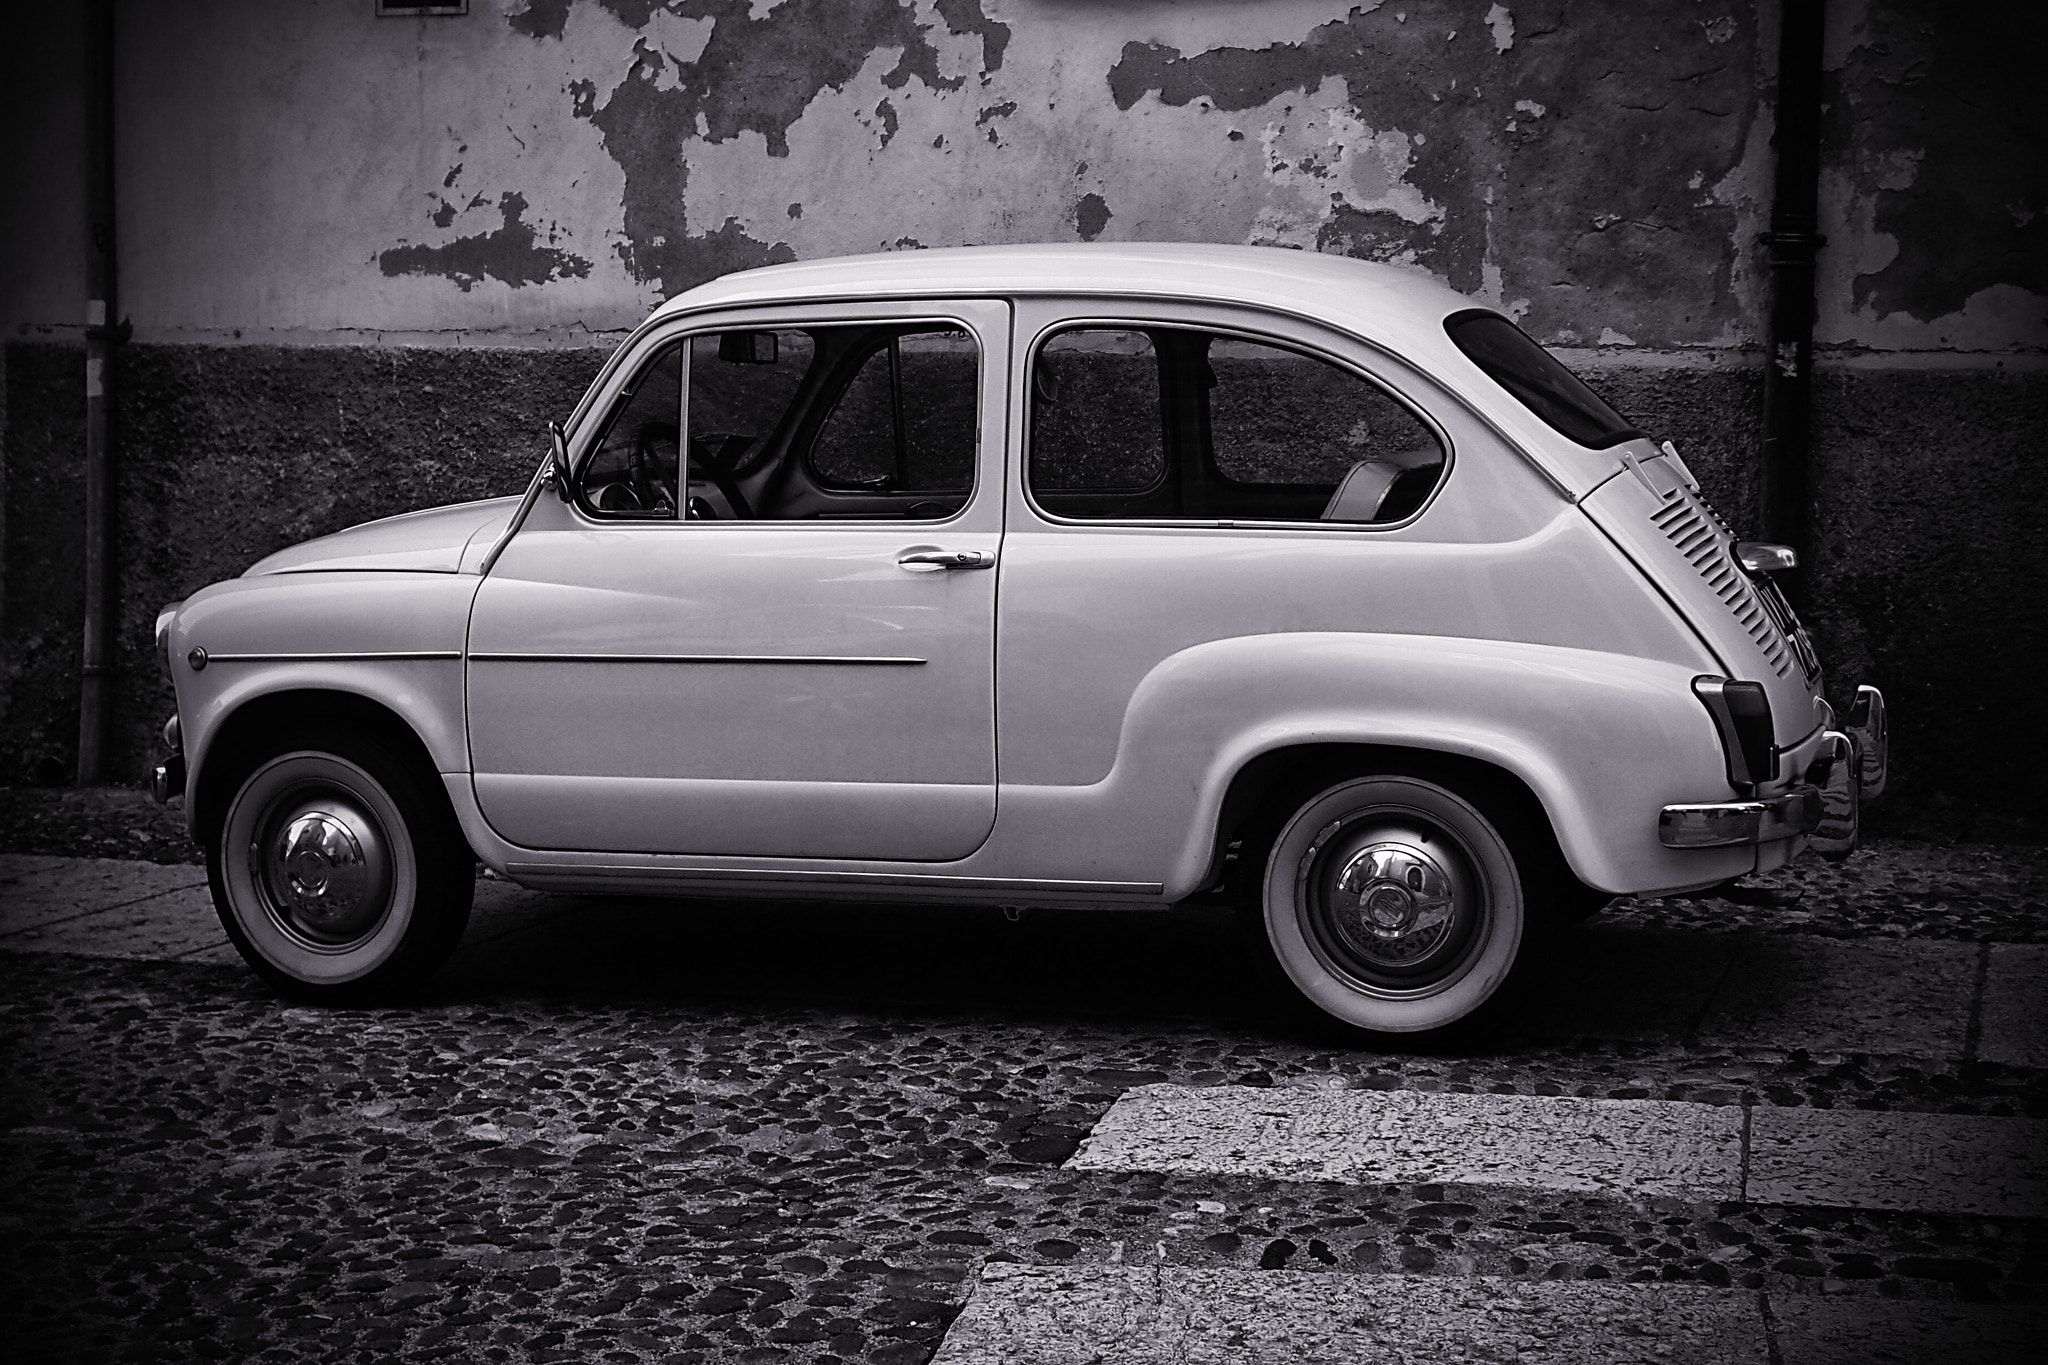 Photograph Vintage Car by Fabrizio Iacoviello on 500px